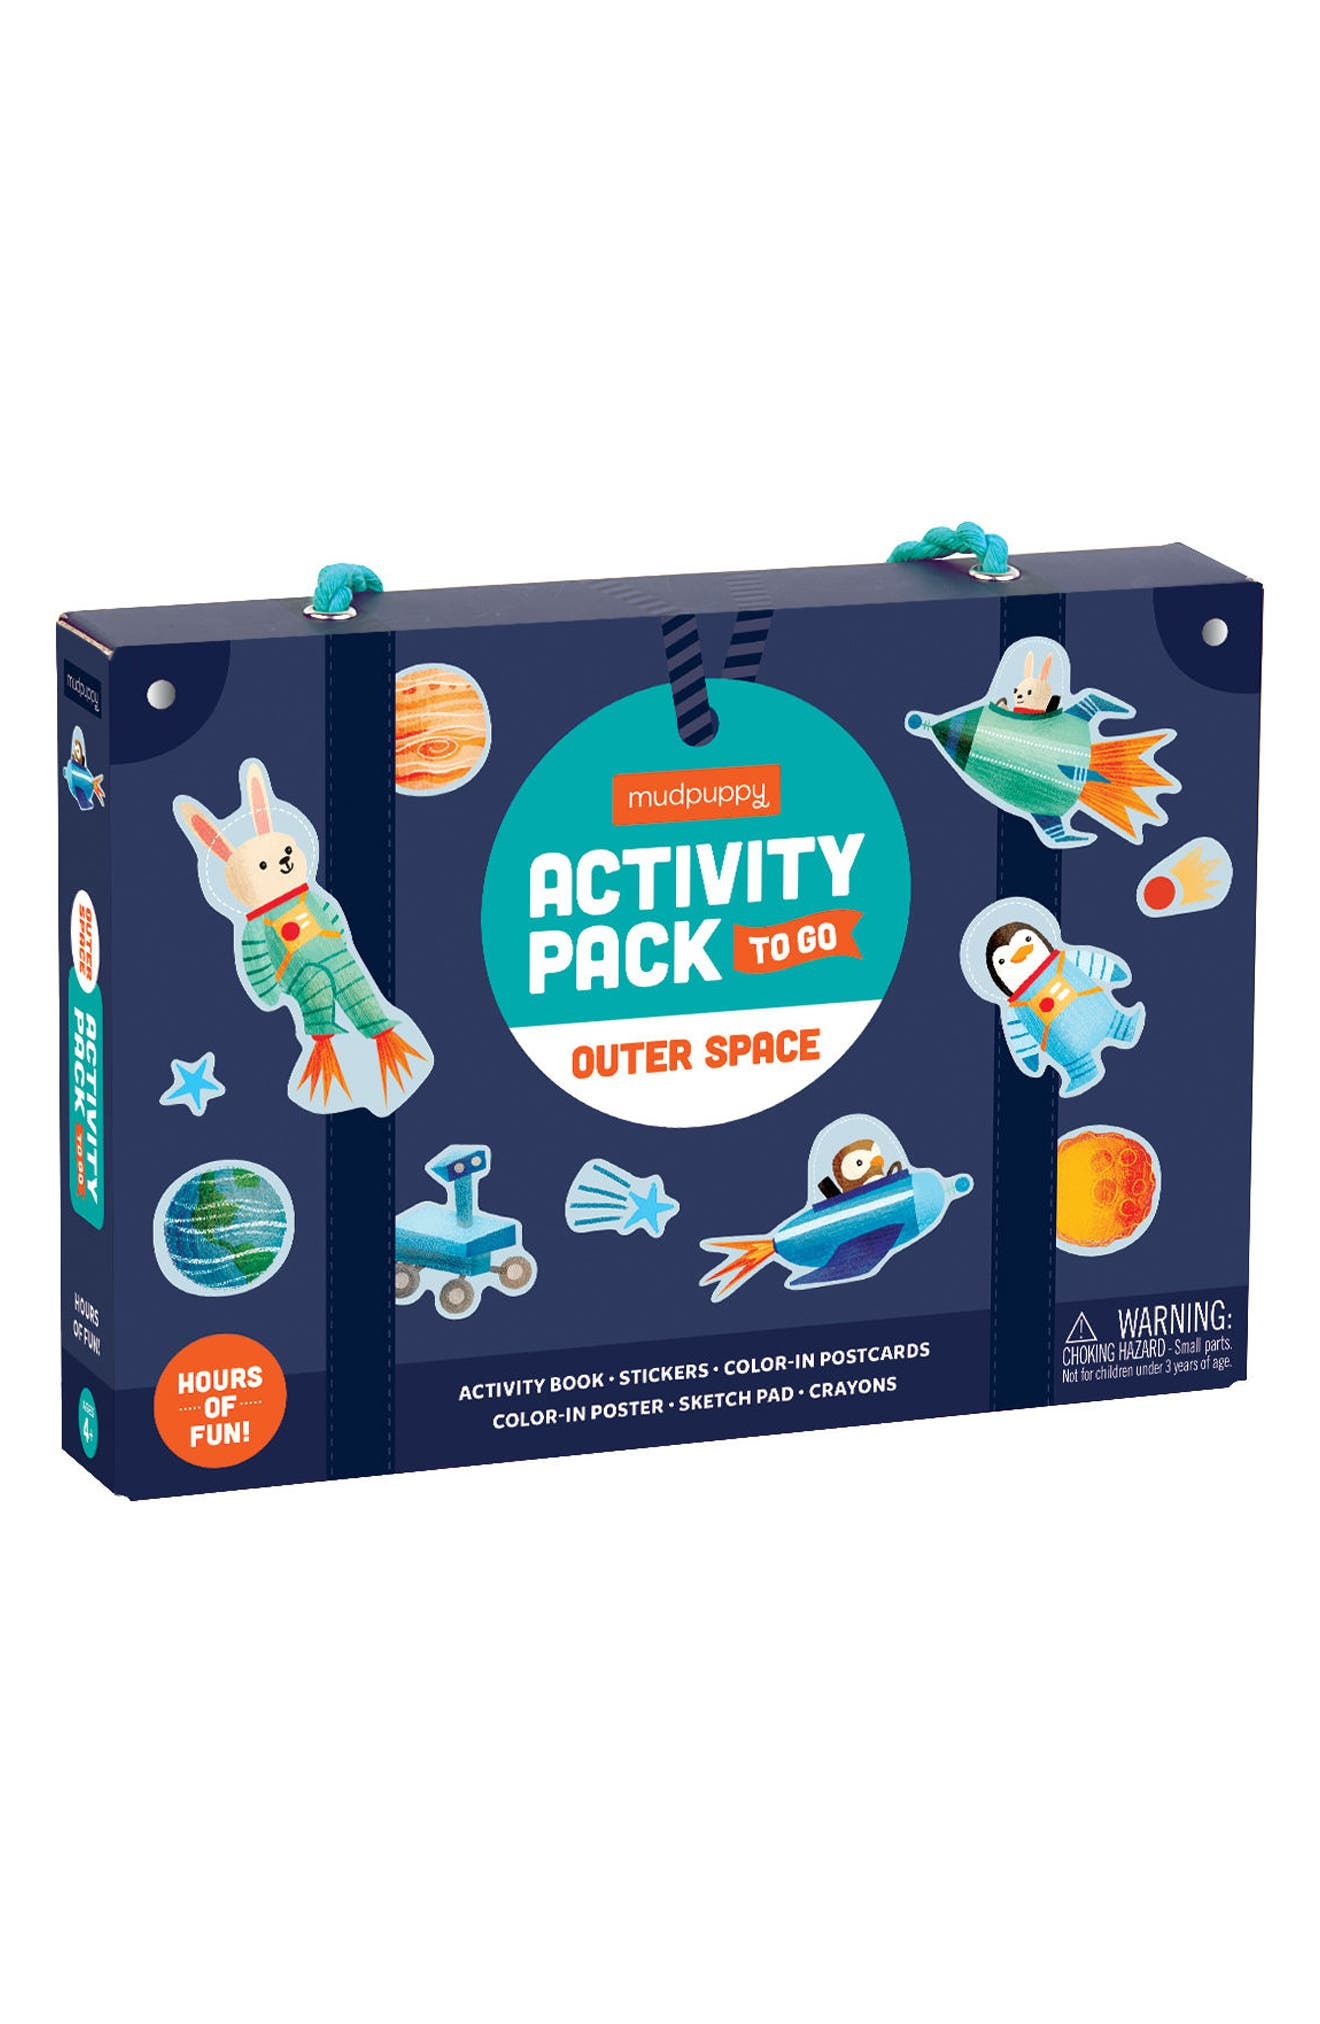 Outer Space Activity Pack to Go Activity Set,                             Alternate thumbnail 2, color,                             400